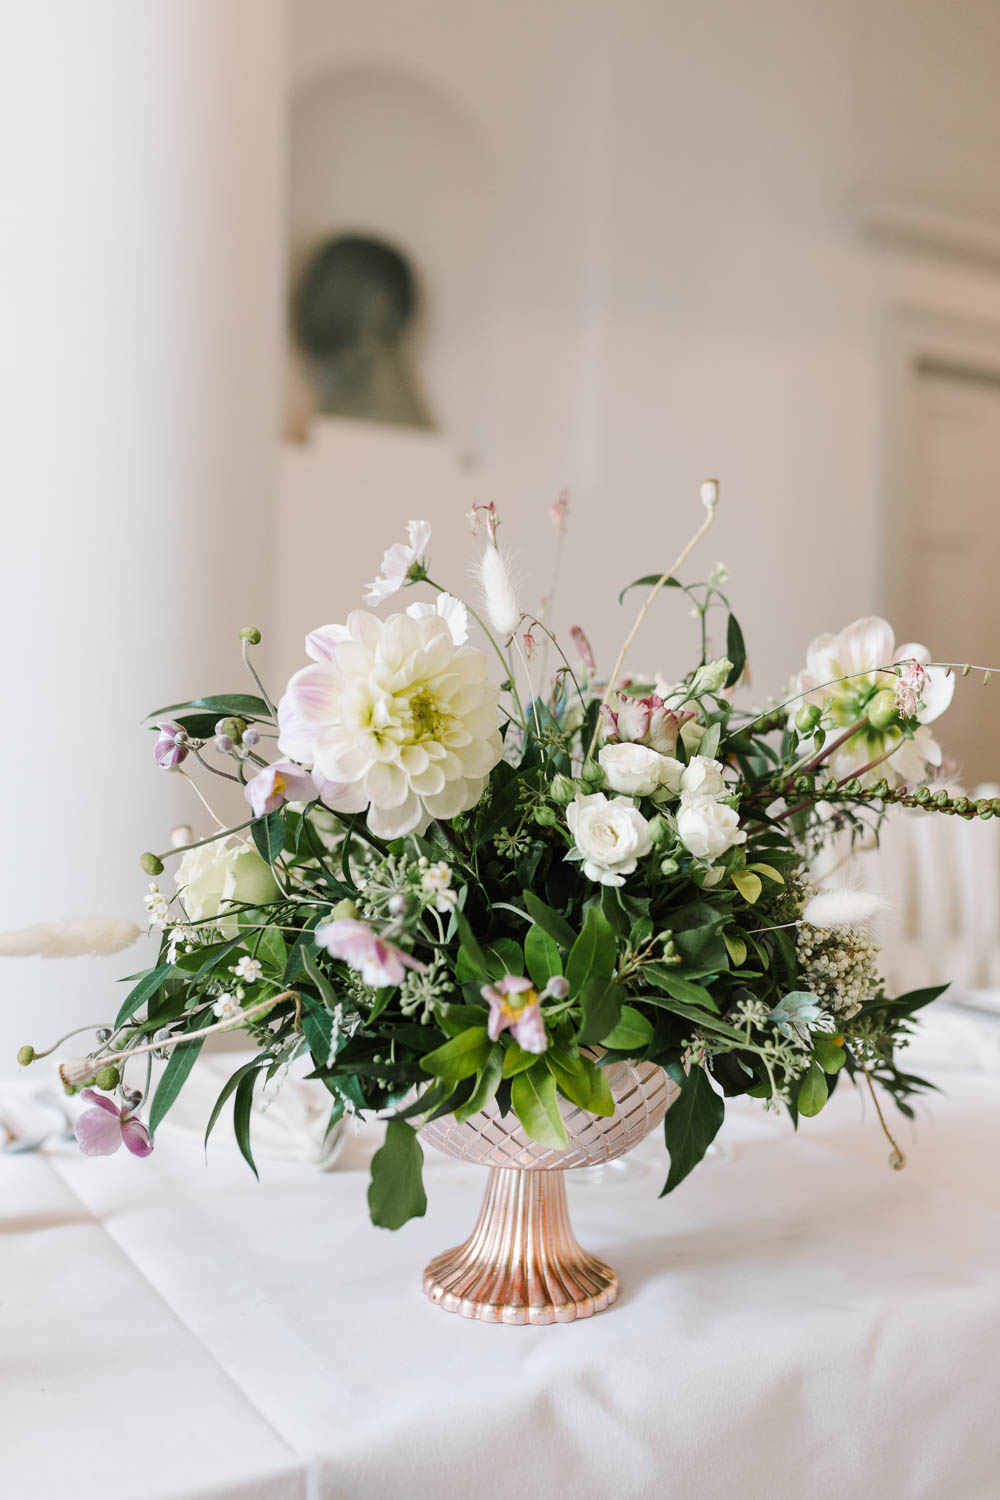 Urn Flowers Centrepiece Table Rose Gold Ivory Dahlia Rose Greenery Compton Verney Wedding Danielle Smith Photography